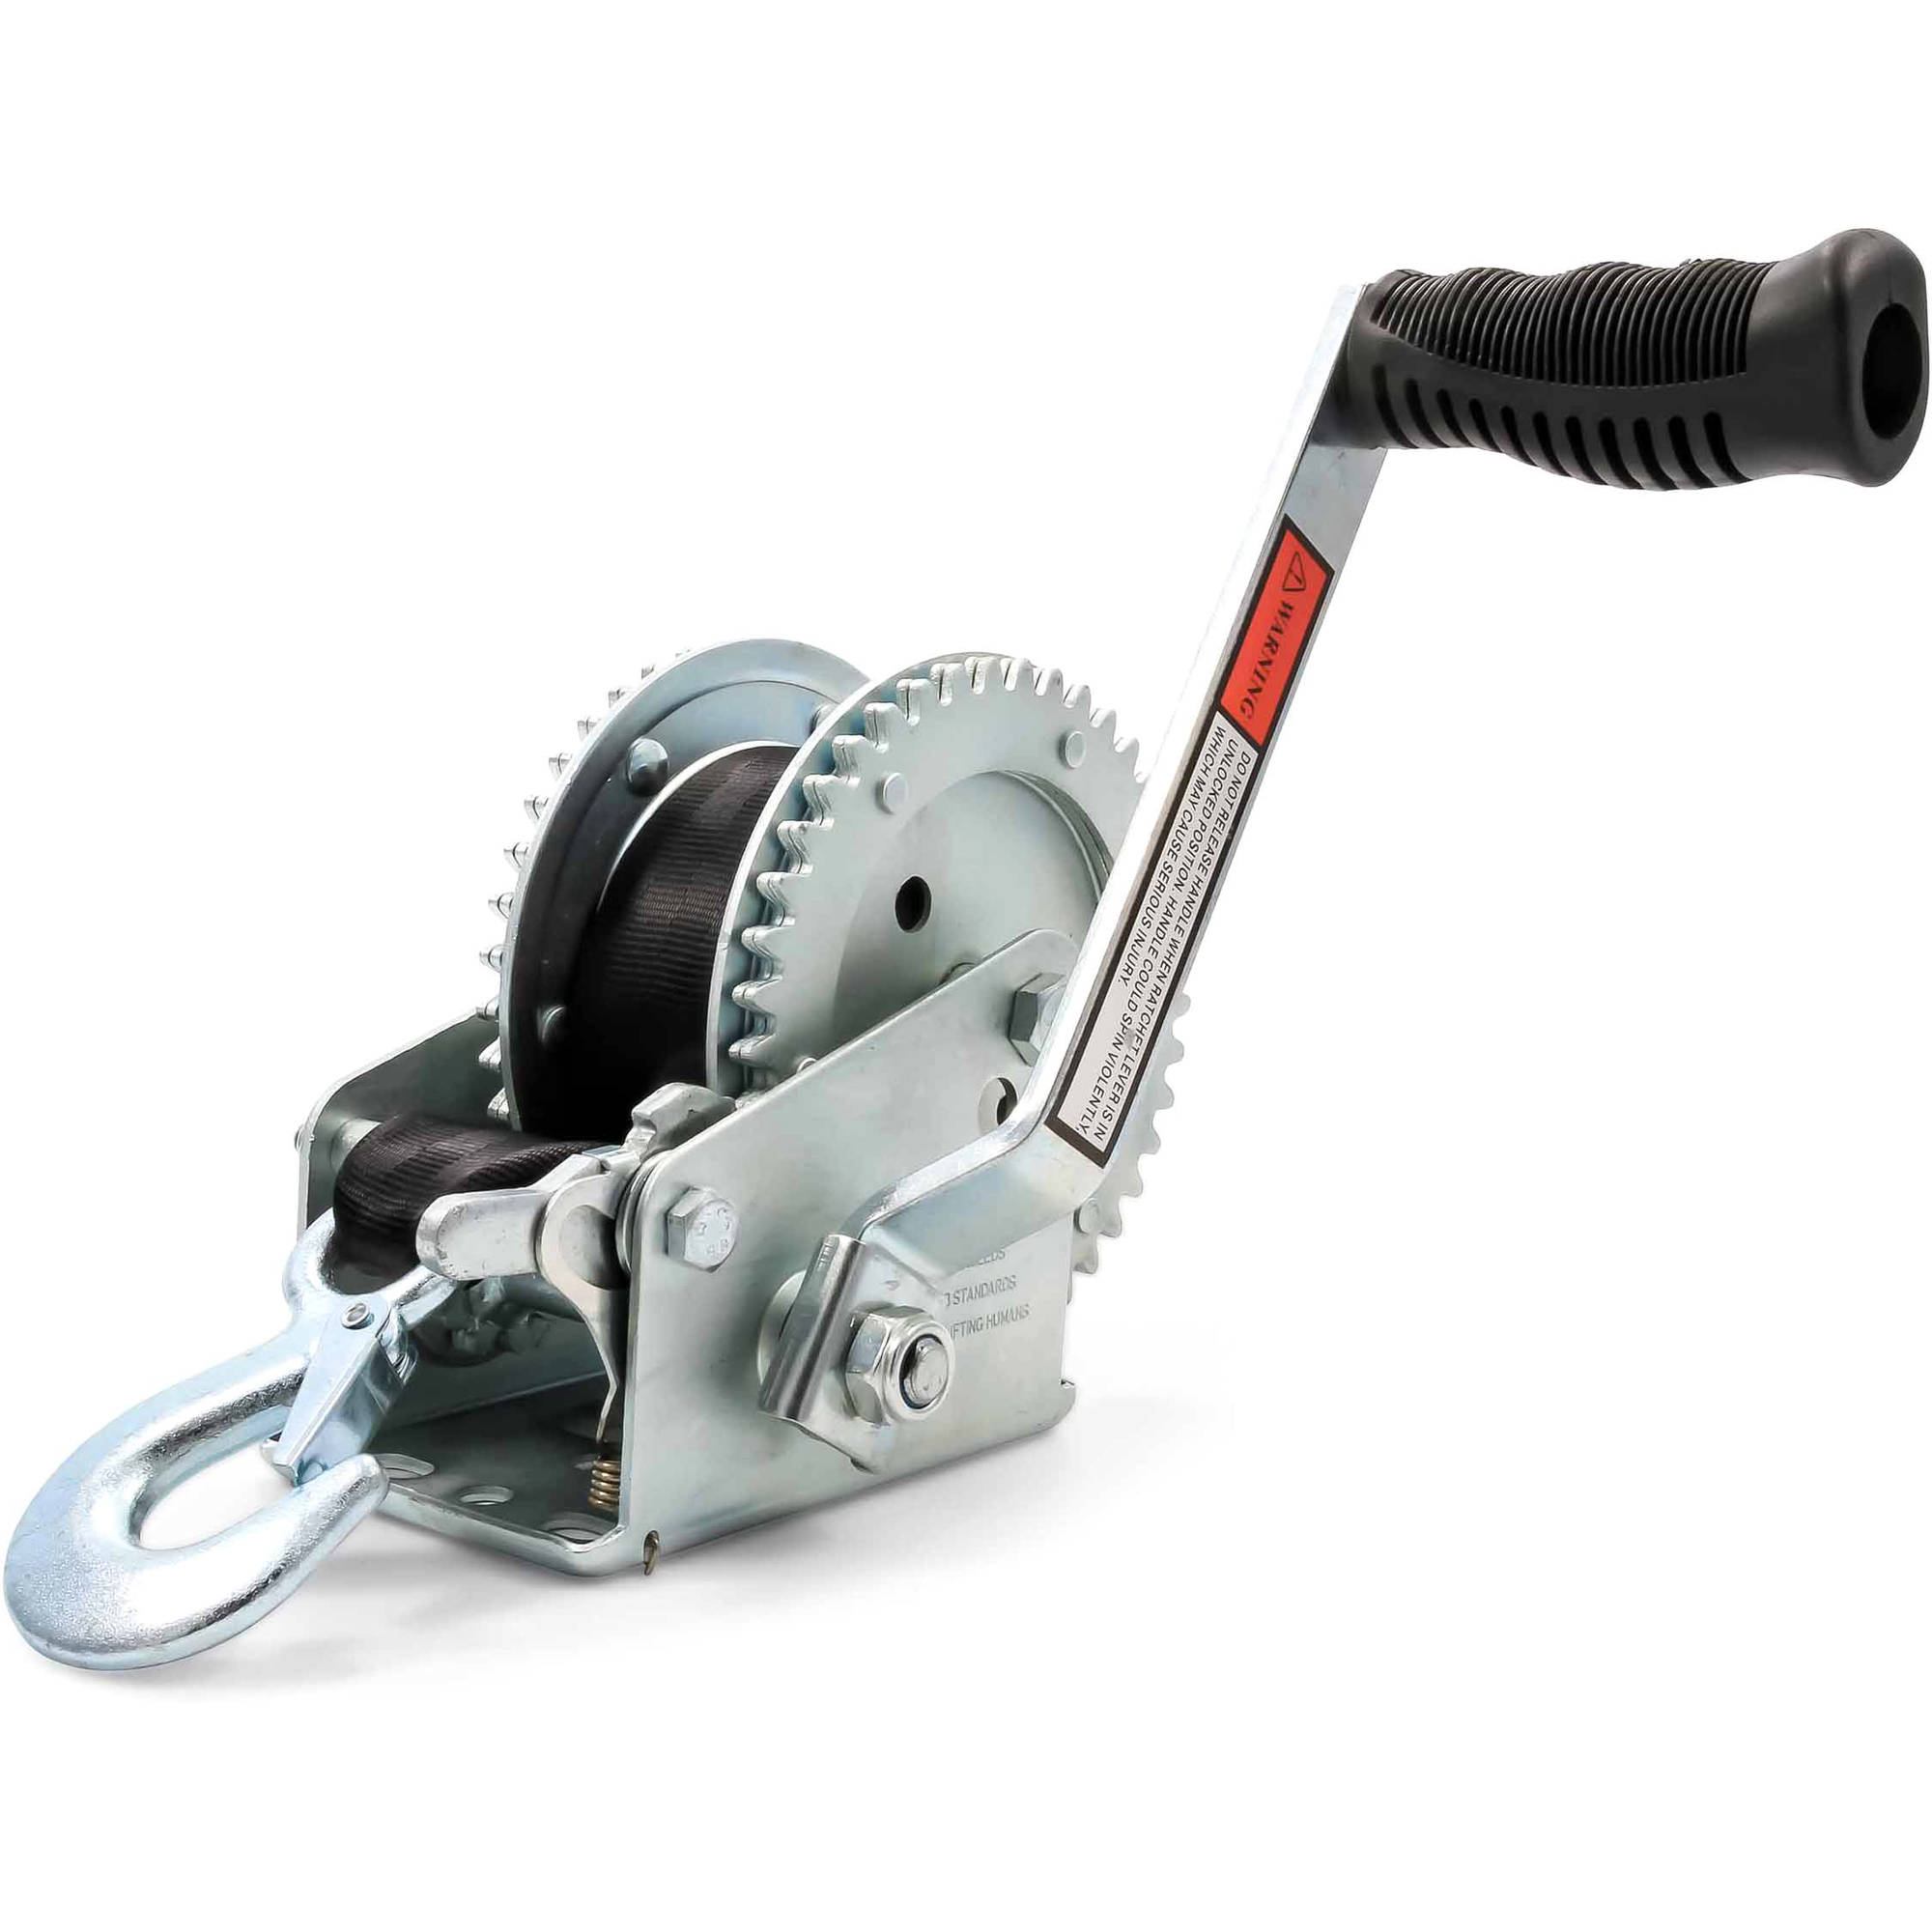 Camco 50000 Winch 2,000 lb With 20 Strap